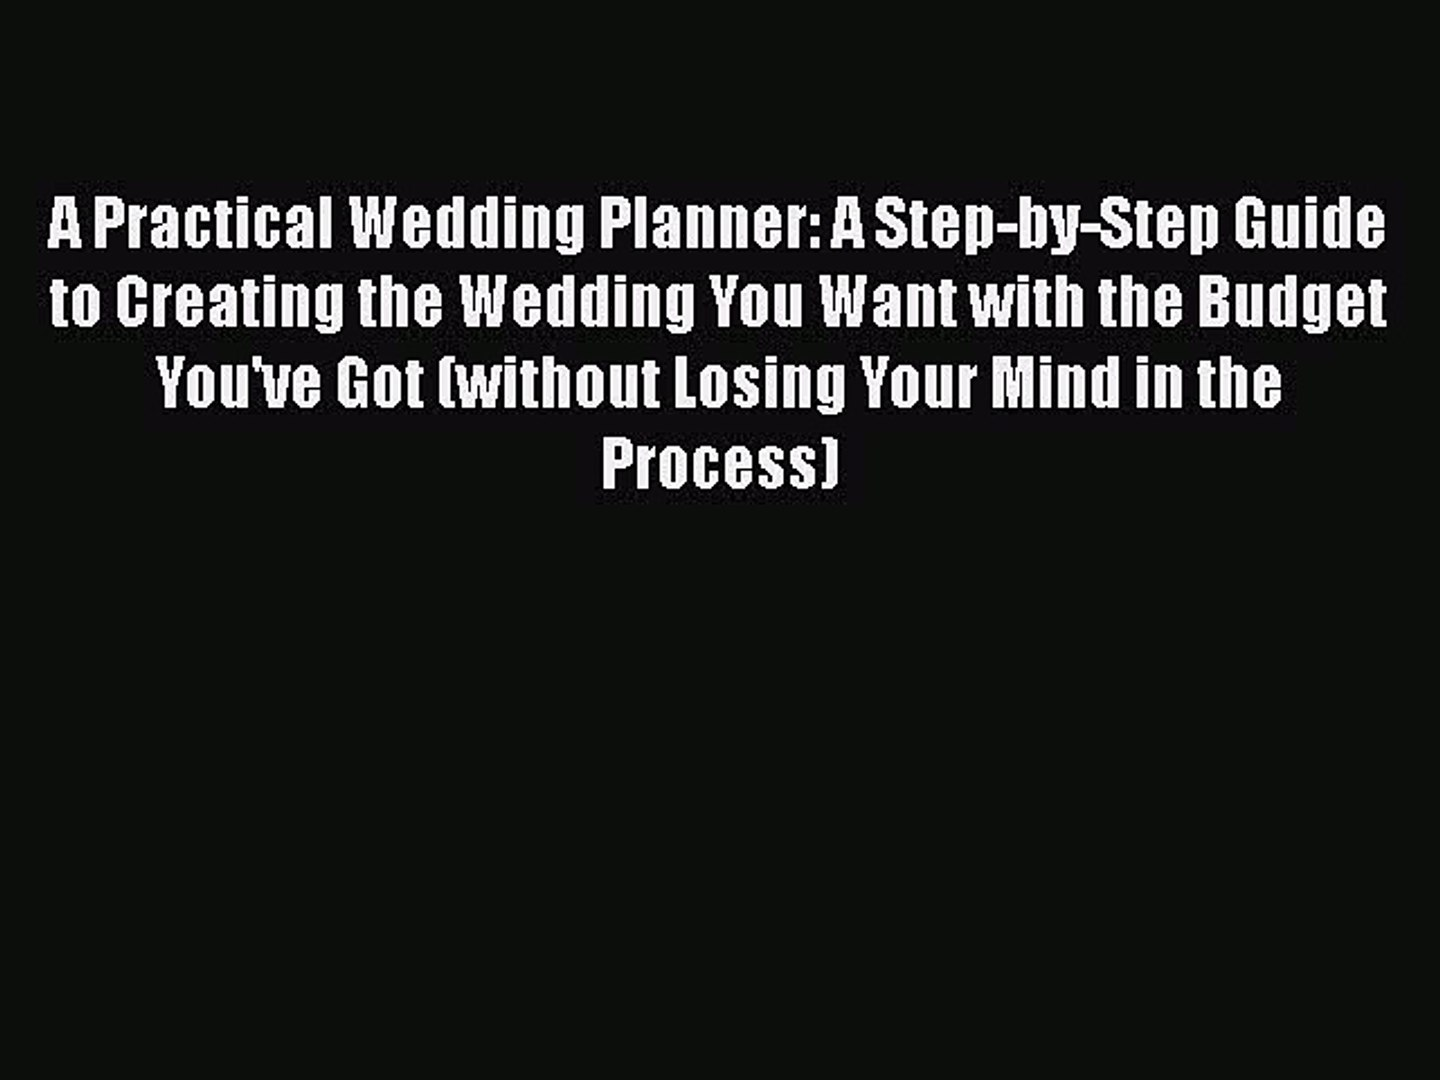 Pdf A Practical Wedding Planner A Step By Step Guide To Creating The Wedding You Want With